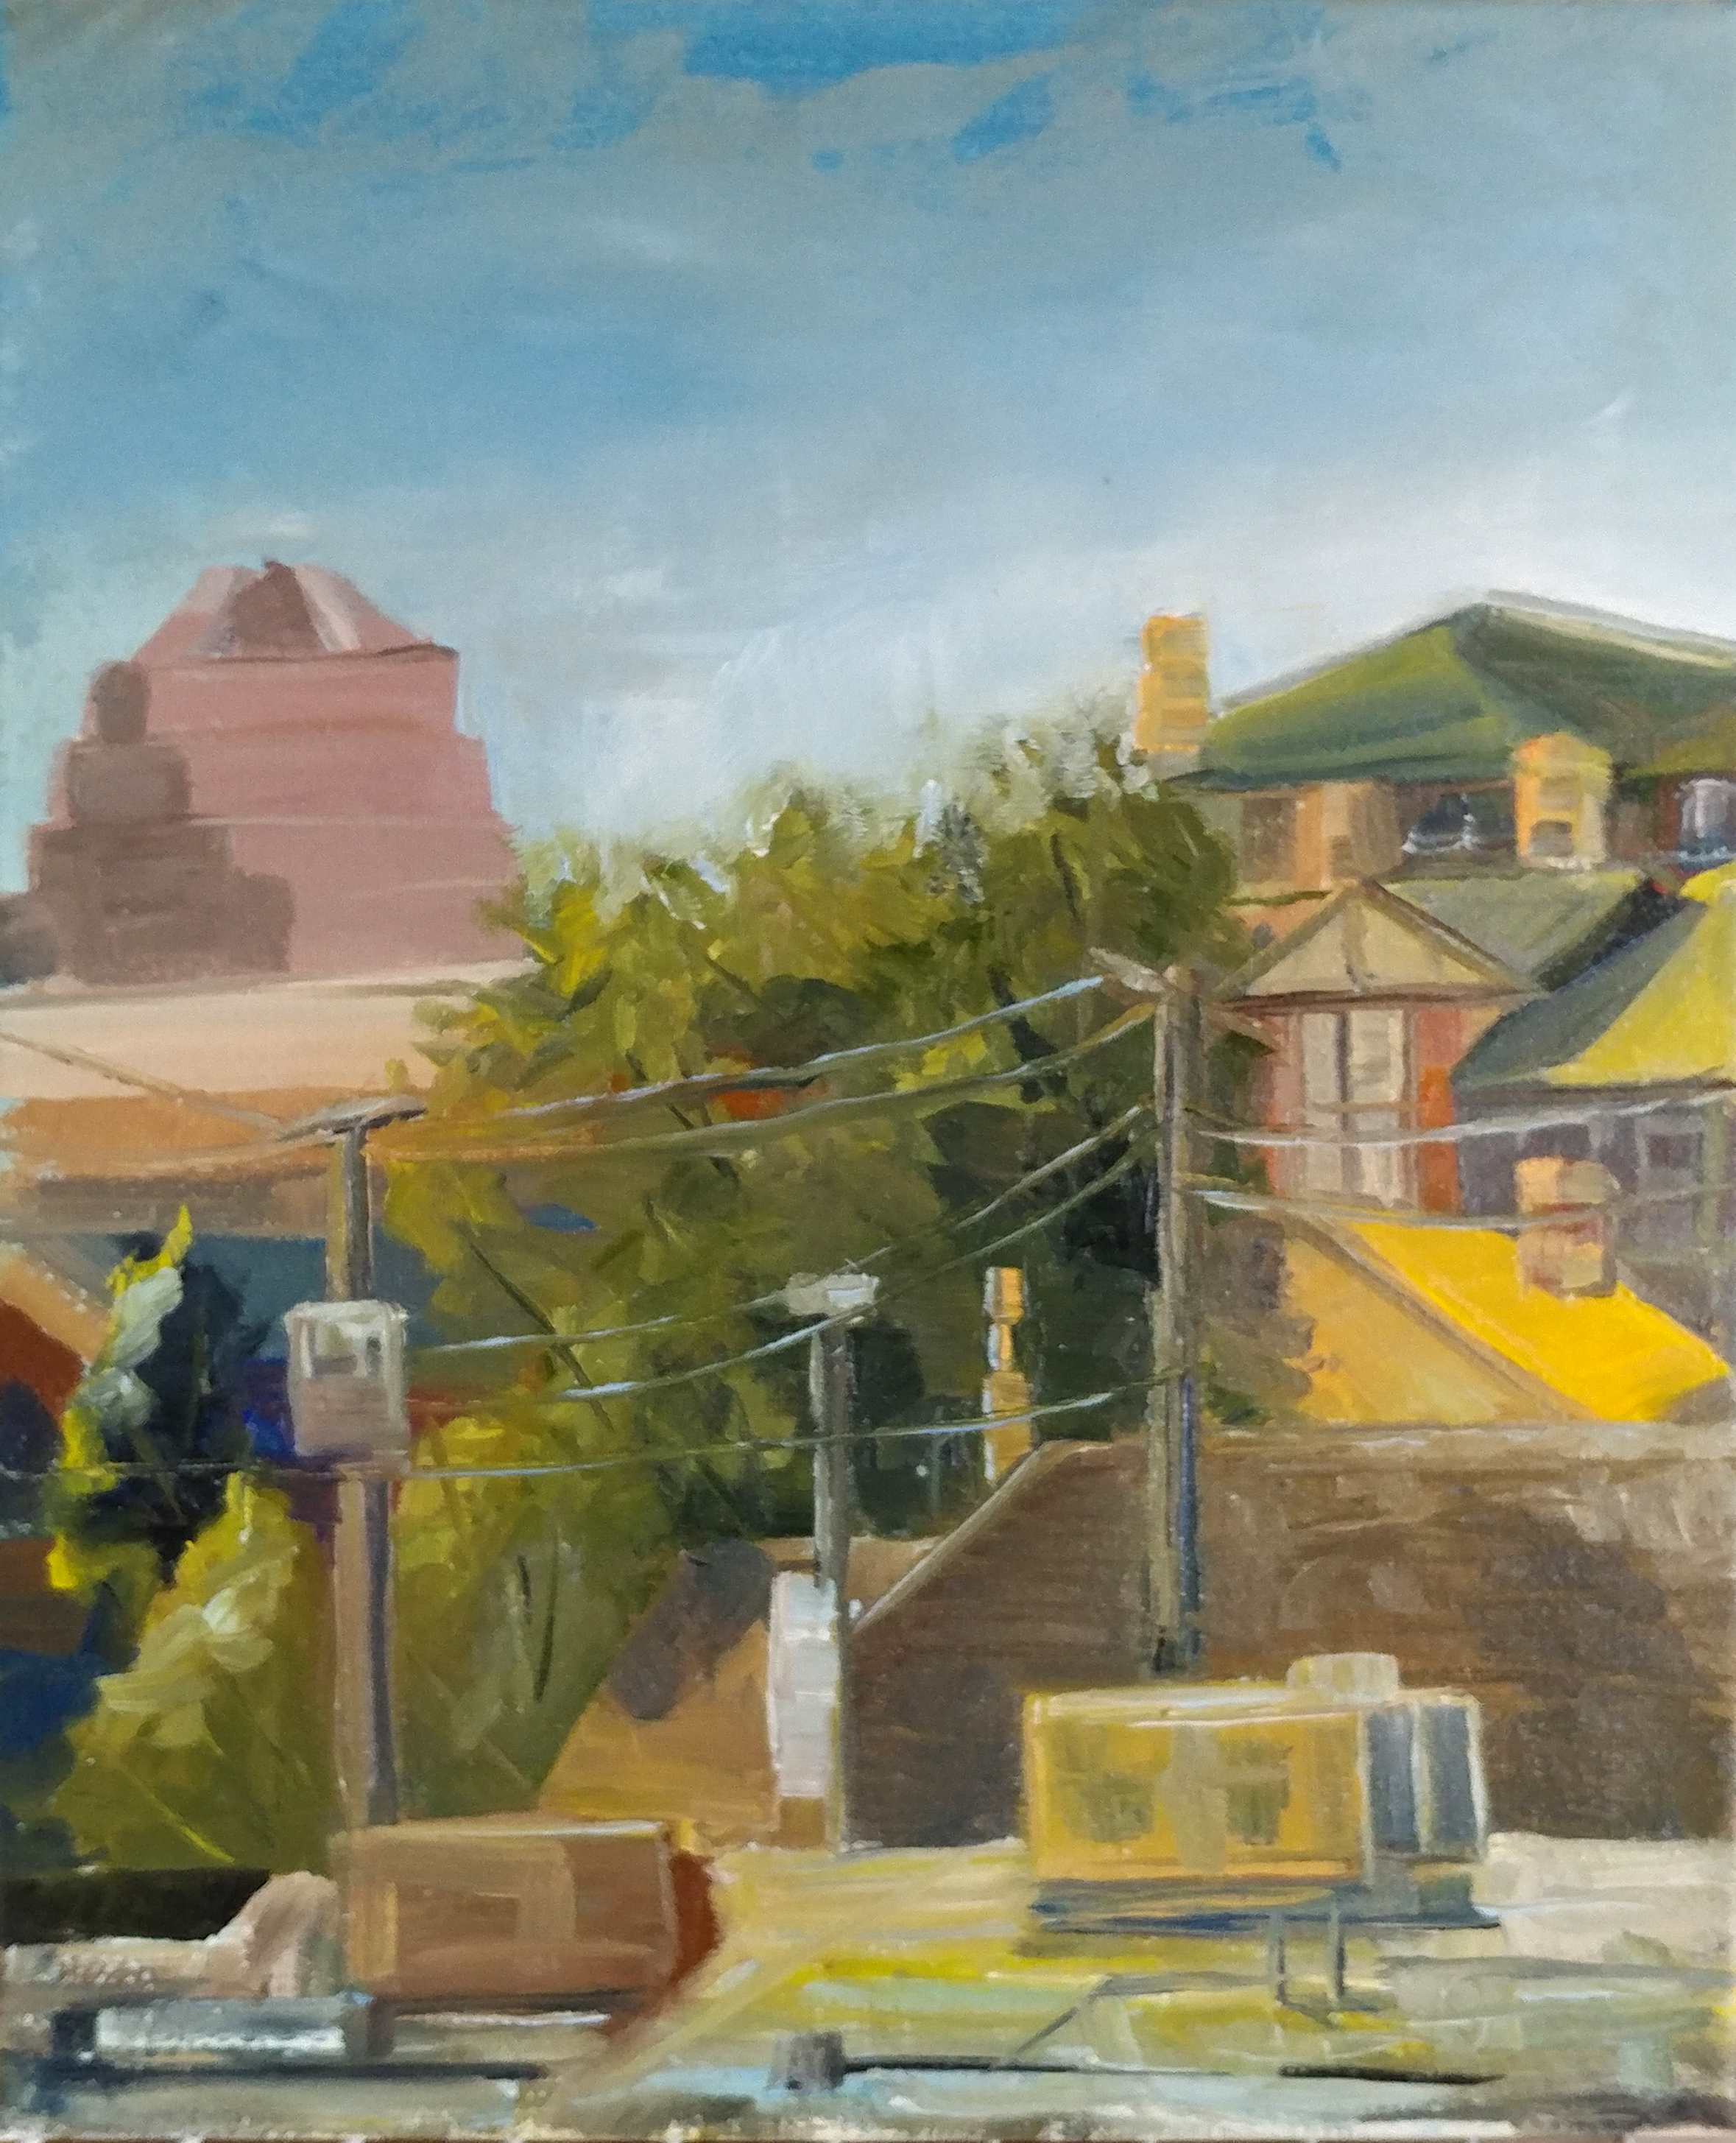 Westport plein air- Hot Summer Morning on Clark Ave KCMO. 11X14 oil on stretched canvass.